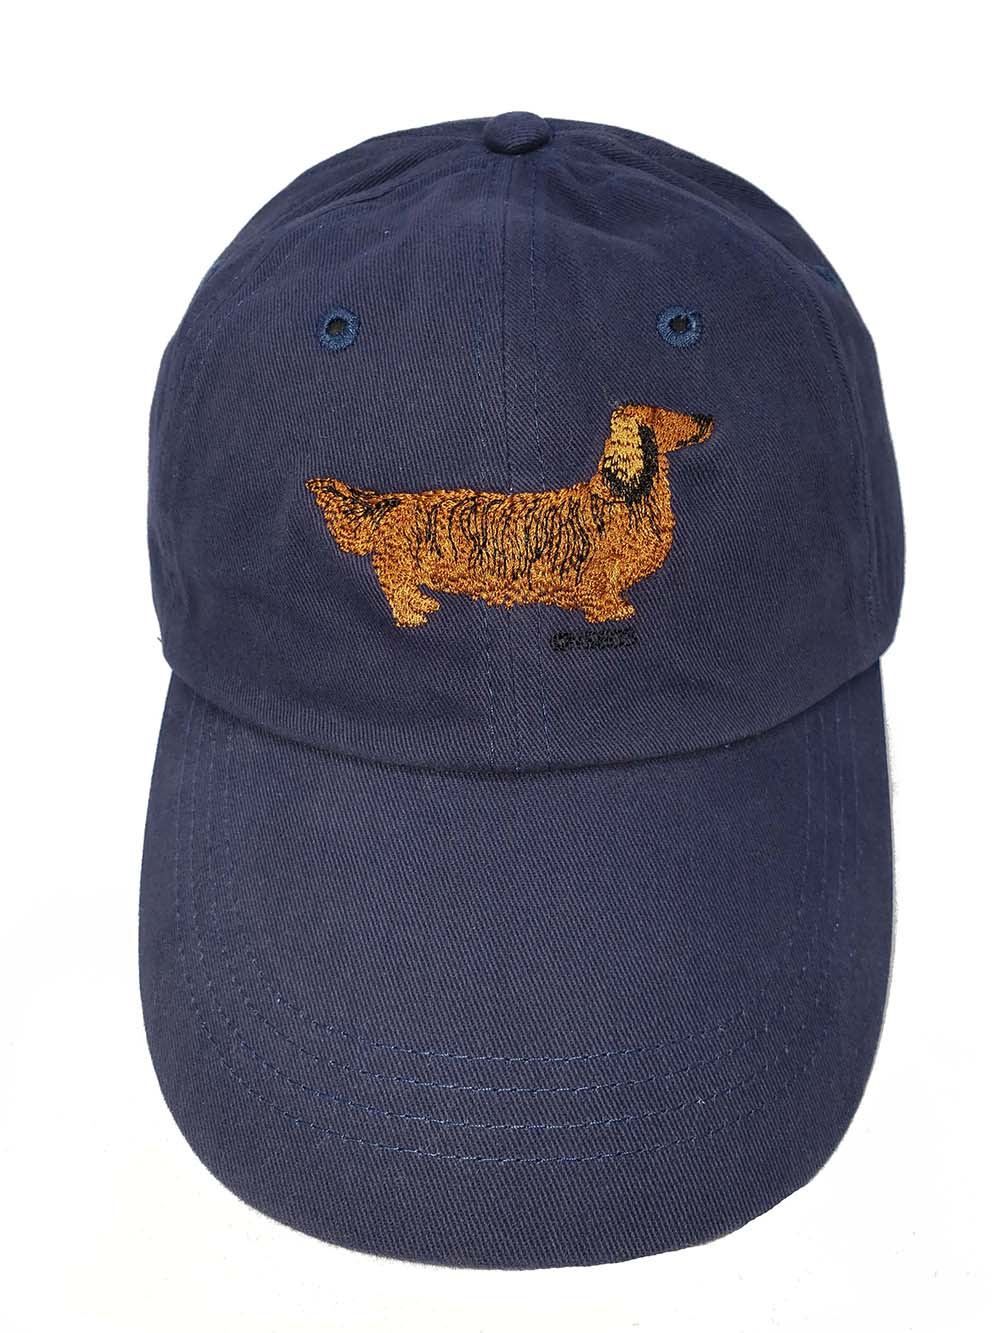 Dachshund Hat Longhaired